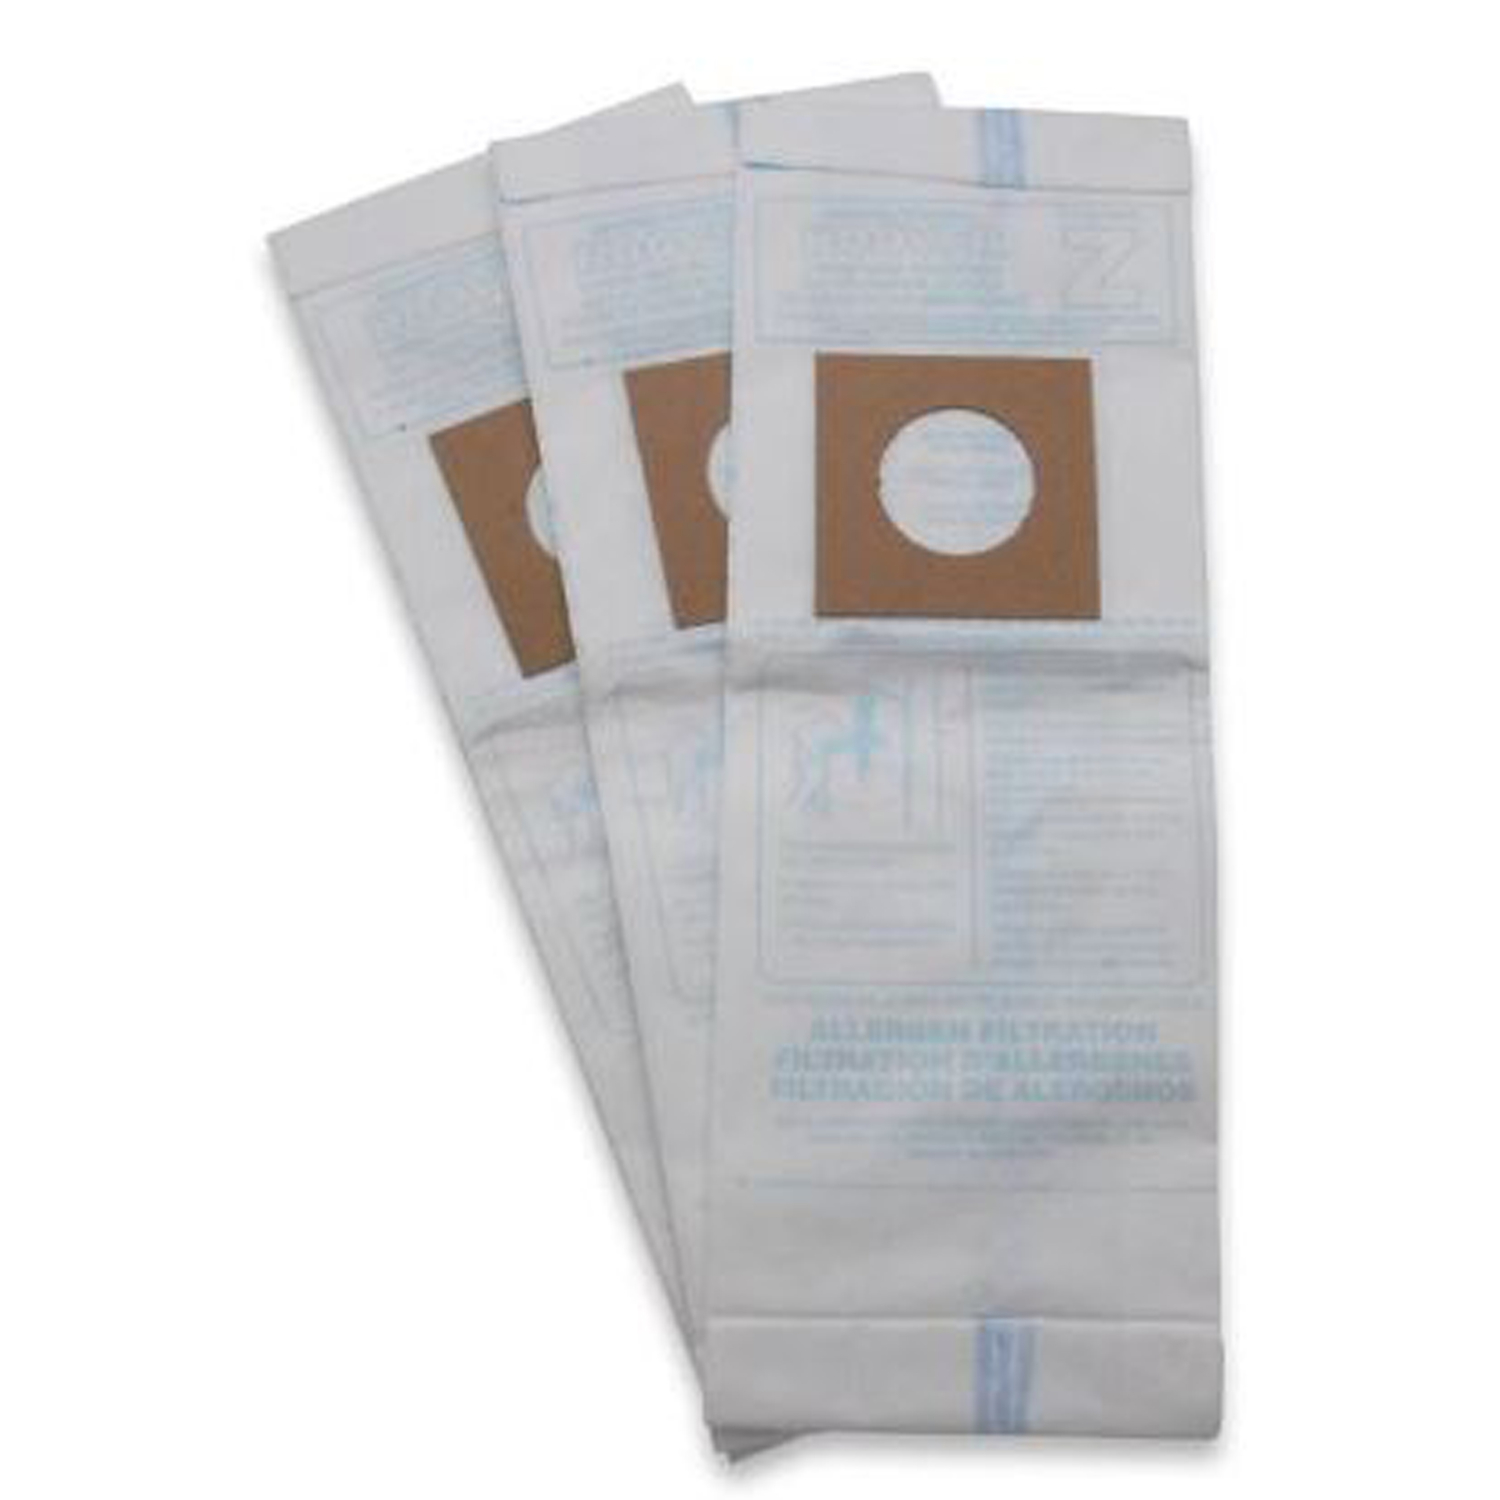 Hoover  Vacuum Bag Micro Filtration Type Z Fits Hoover Bagged 3 / Pack Upright